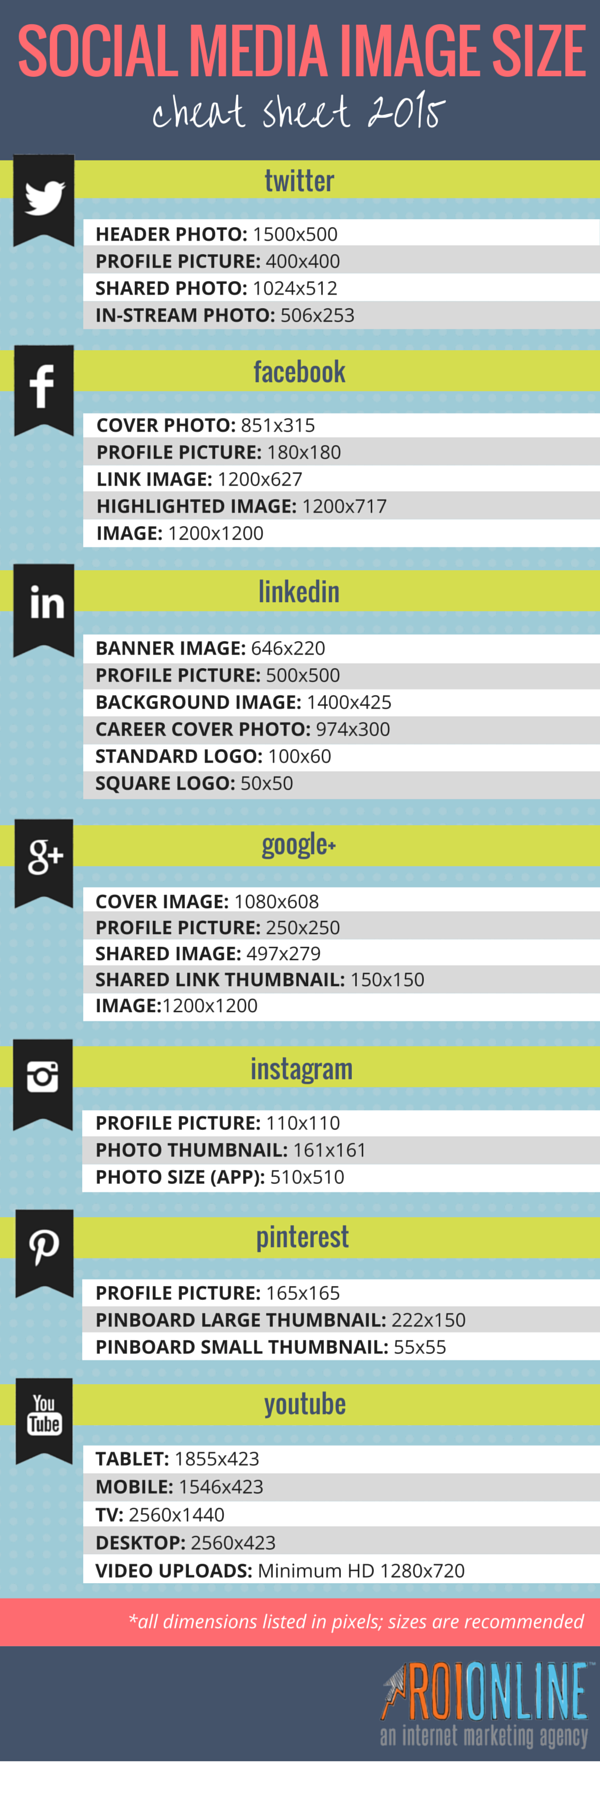 Current Social Media Image Size Cheat Sheet Infographic